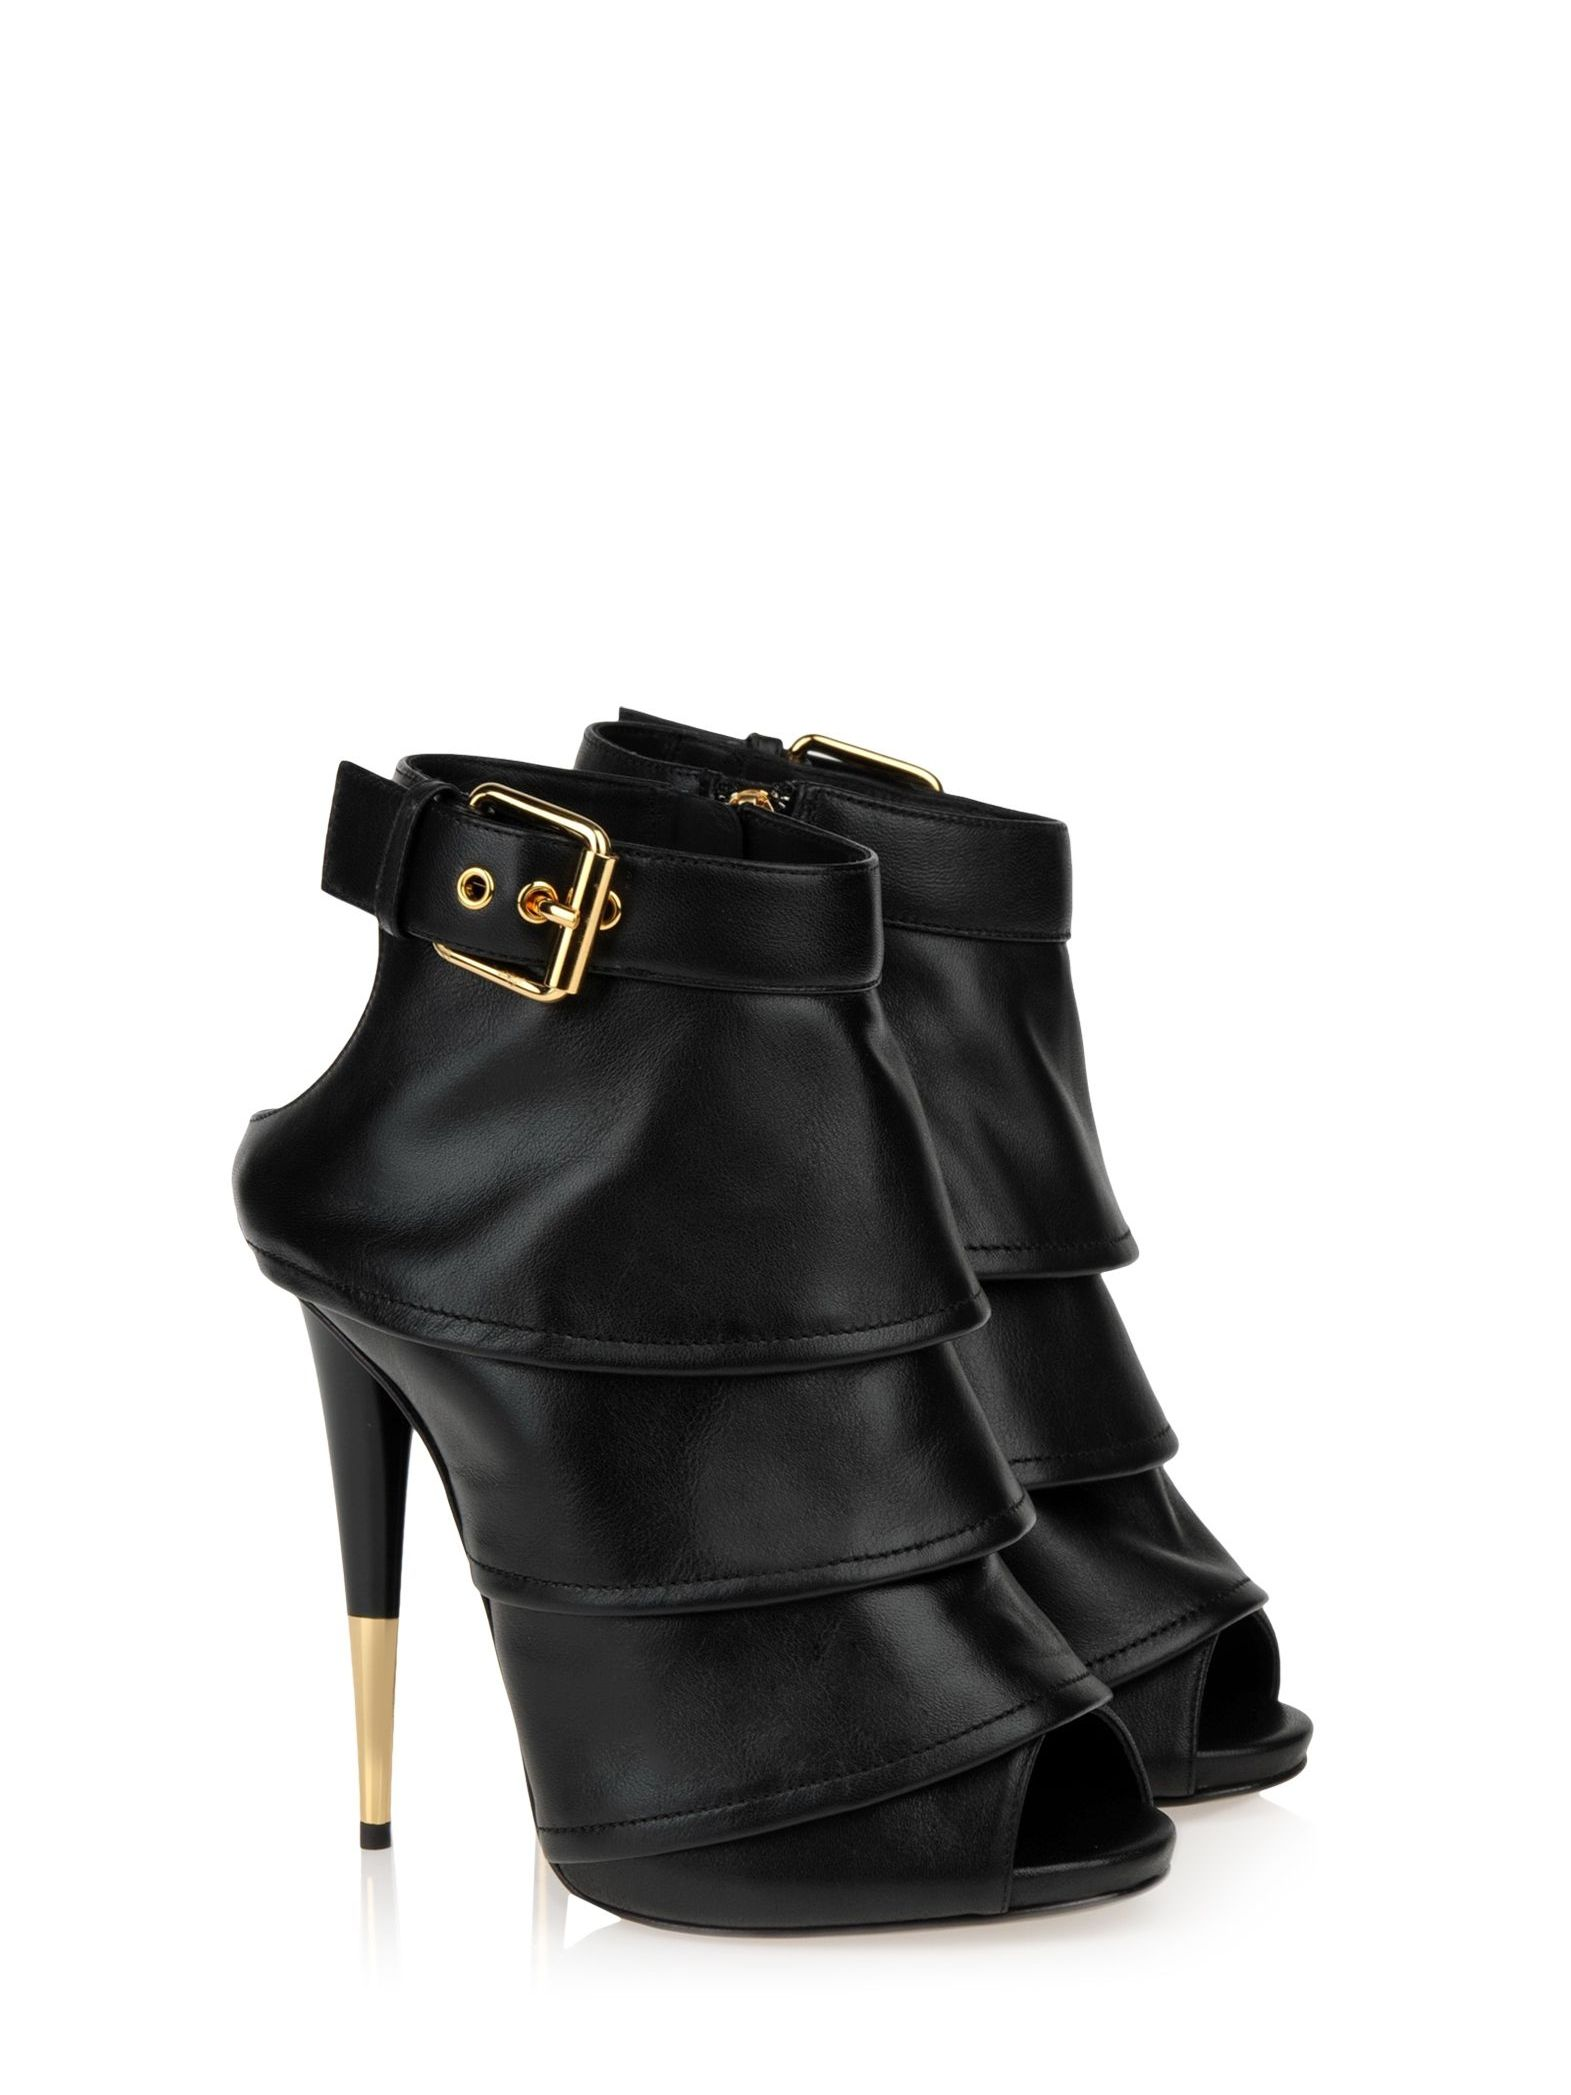 11e17aa6dc Giuseppe Zanotti heels ankle booties in black Leather with golden ...